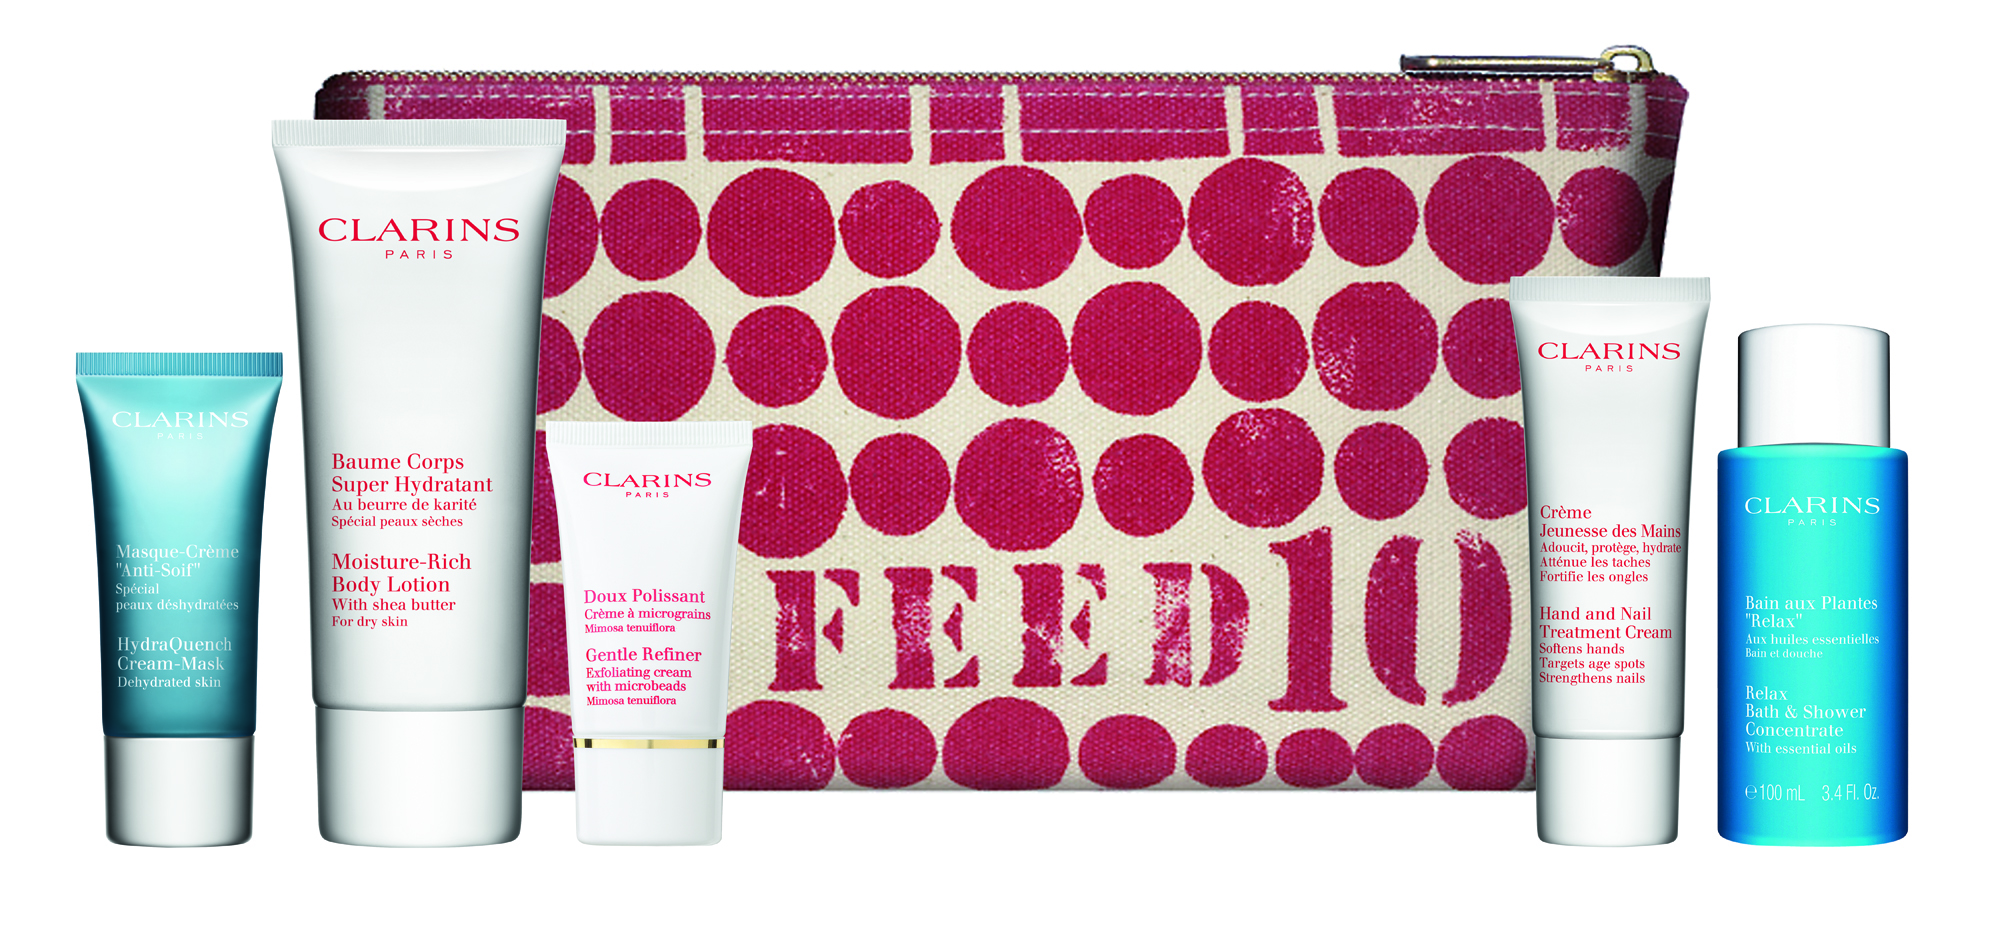 clarins-feed-a-child-campaign